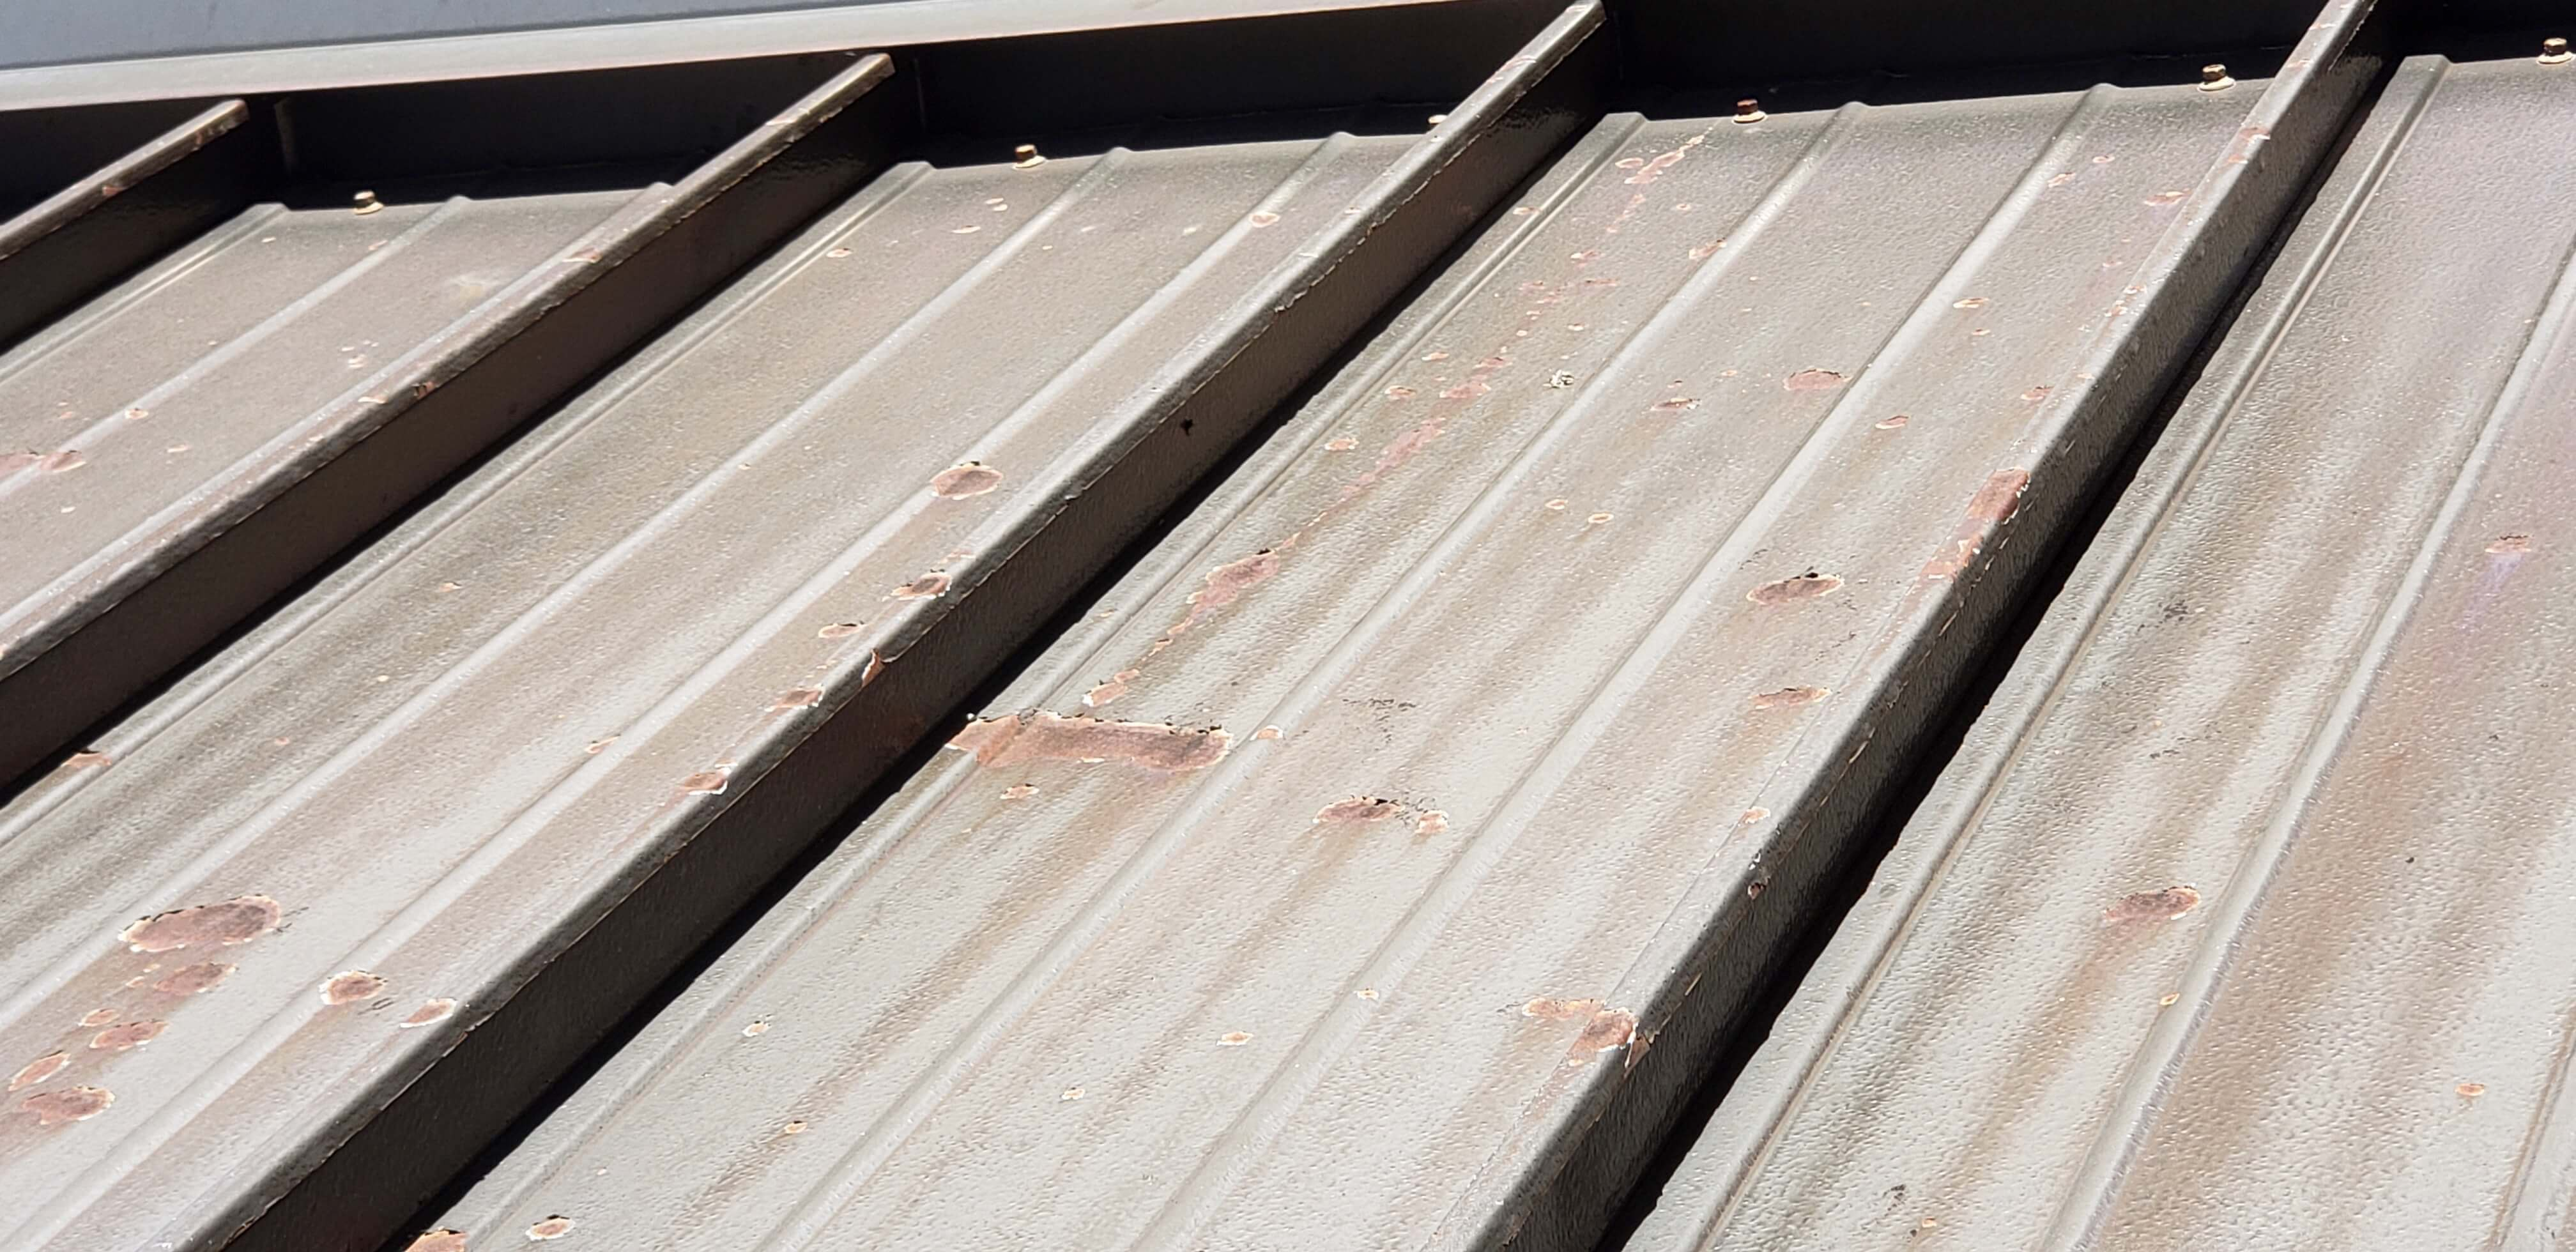 boral steel metal roofing